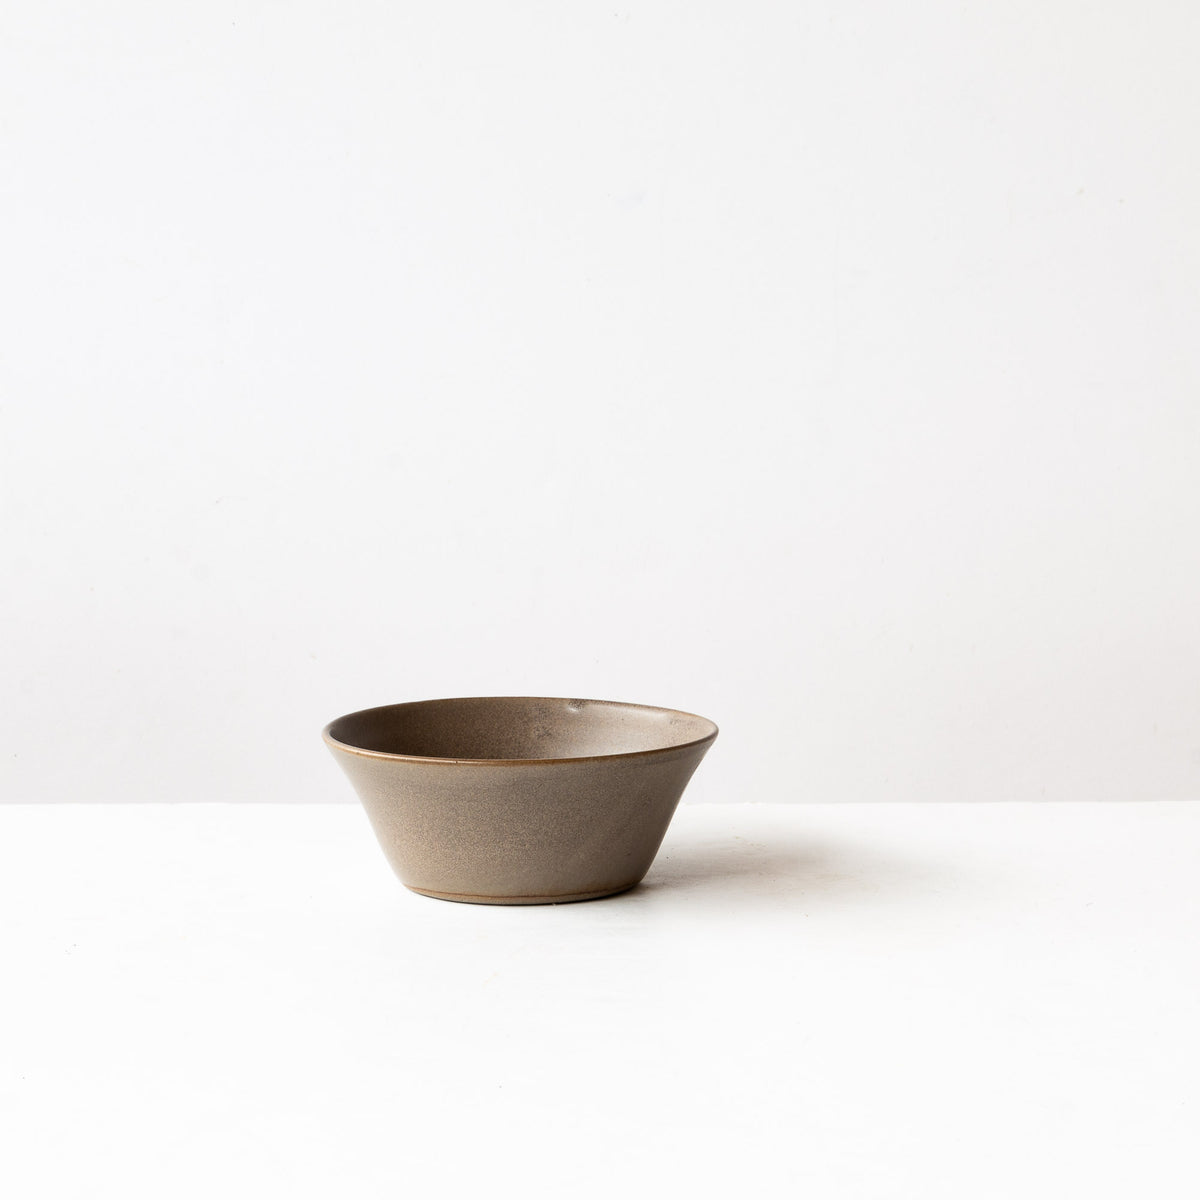 Taupe - Handmade Grey Stoneware Blooming Bowl - Sold by Chic & Basta